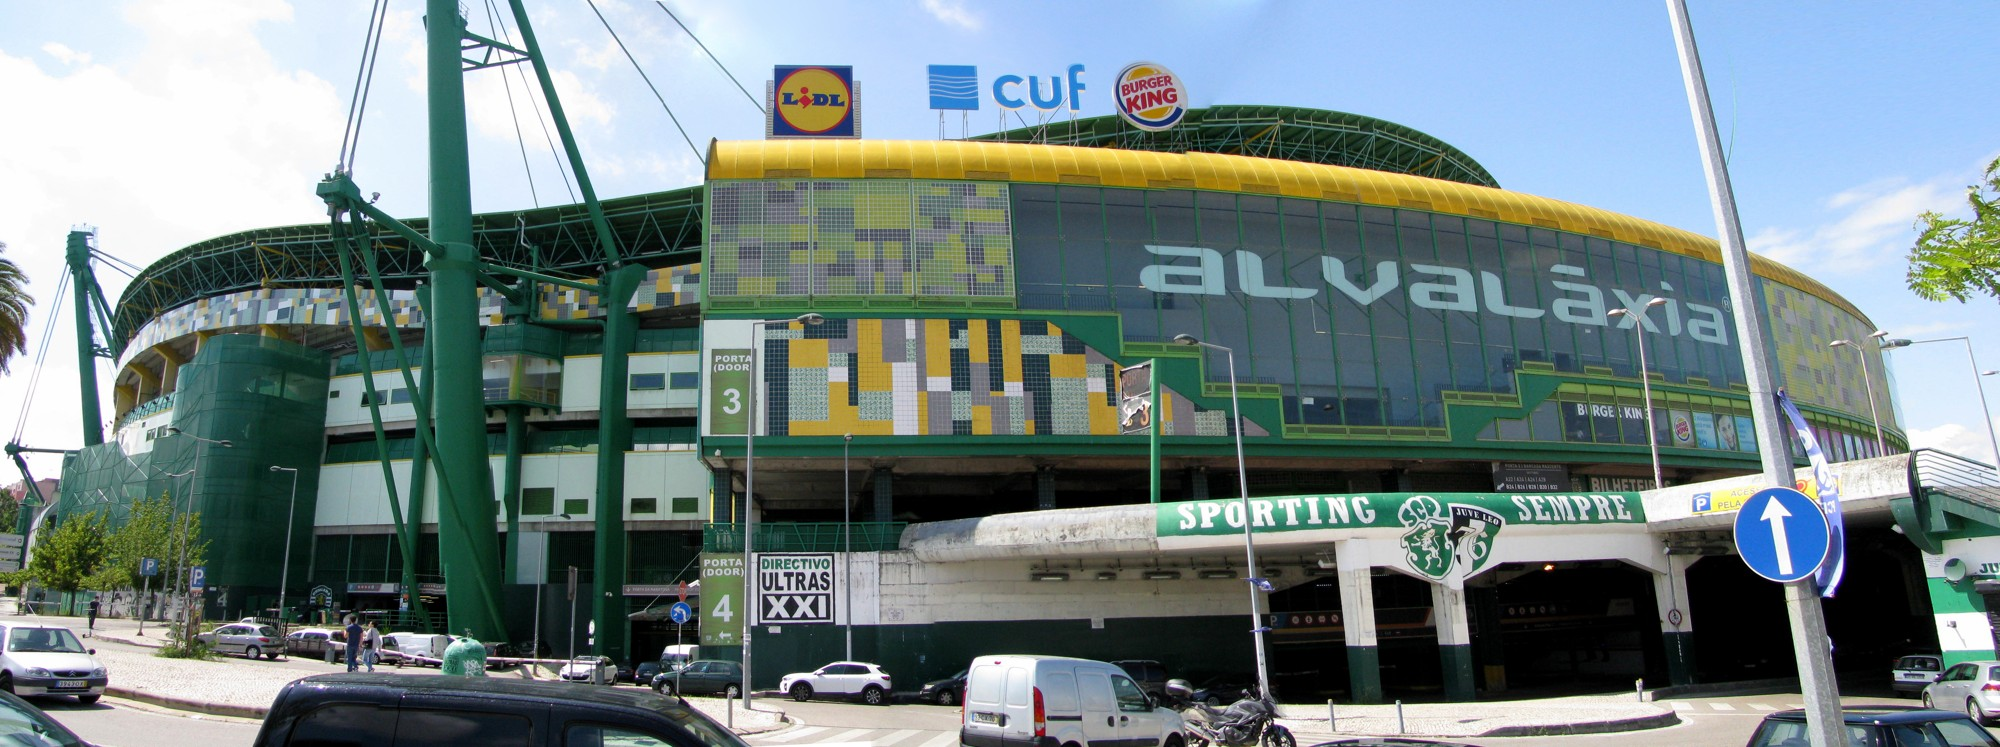 Estadio Jose Alvalade